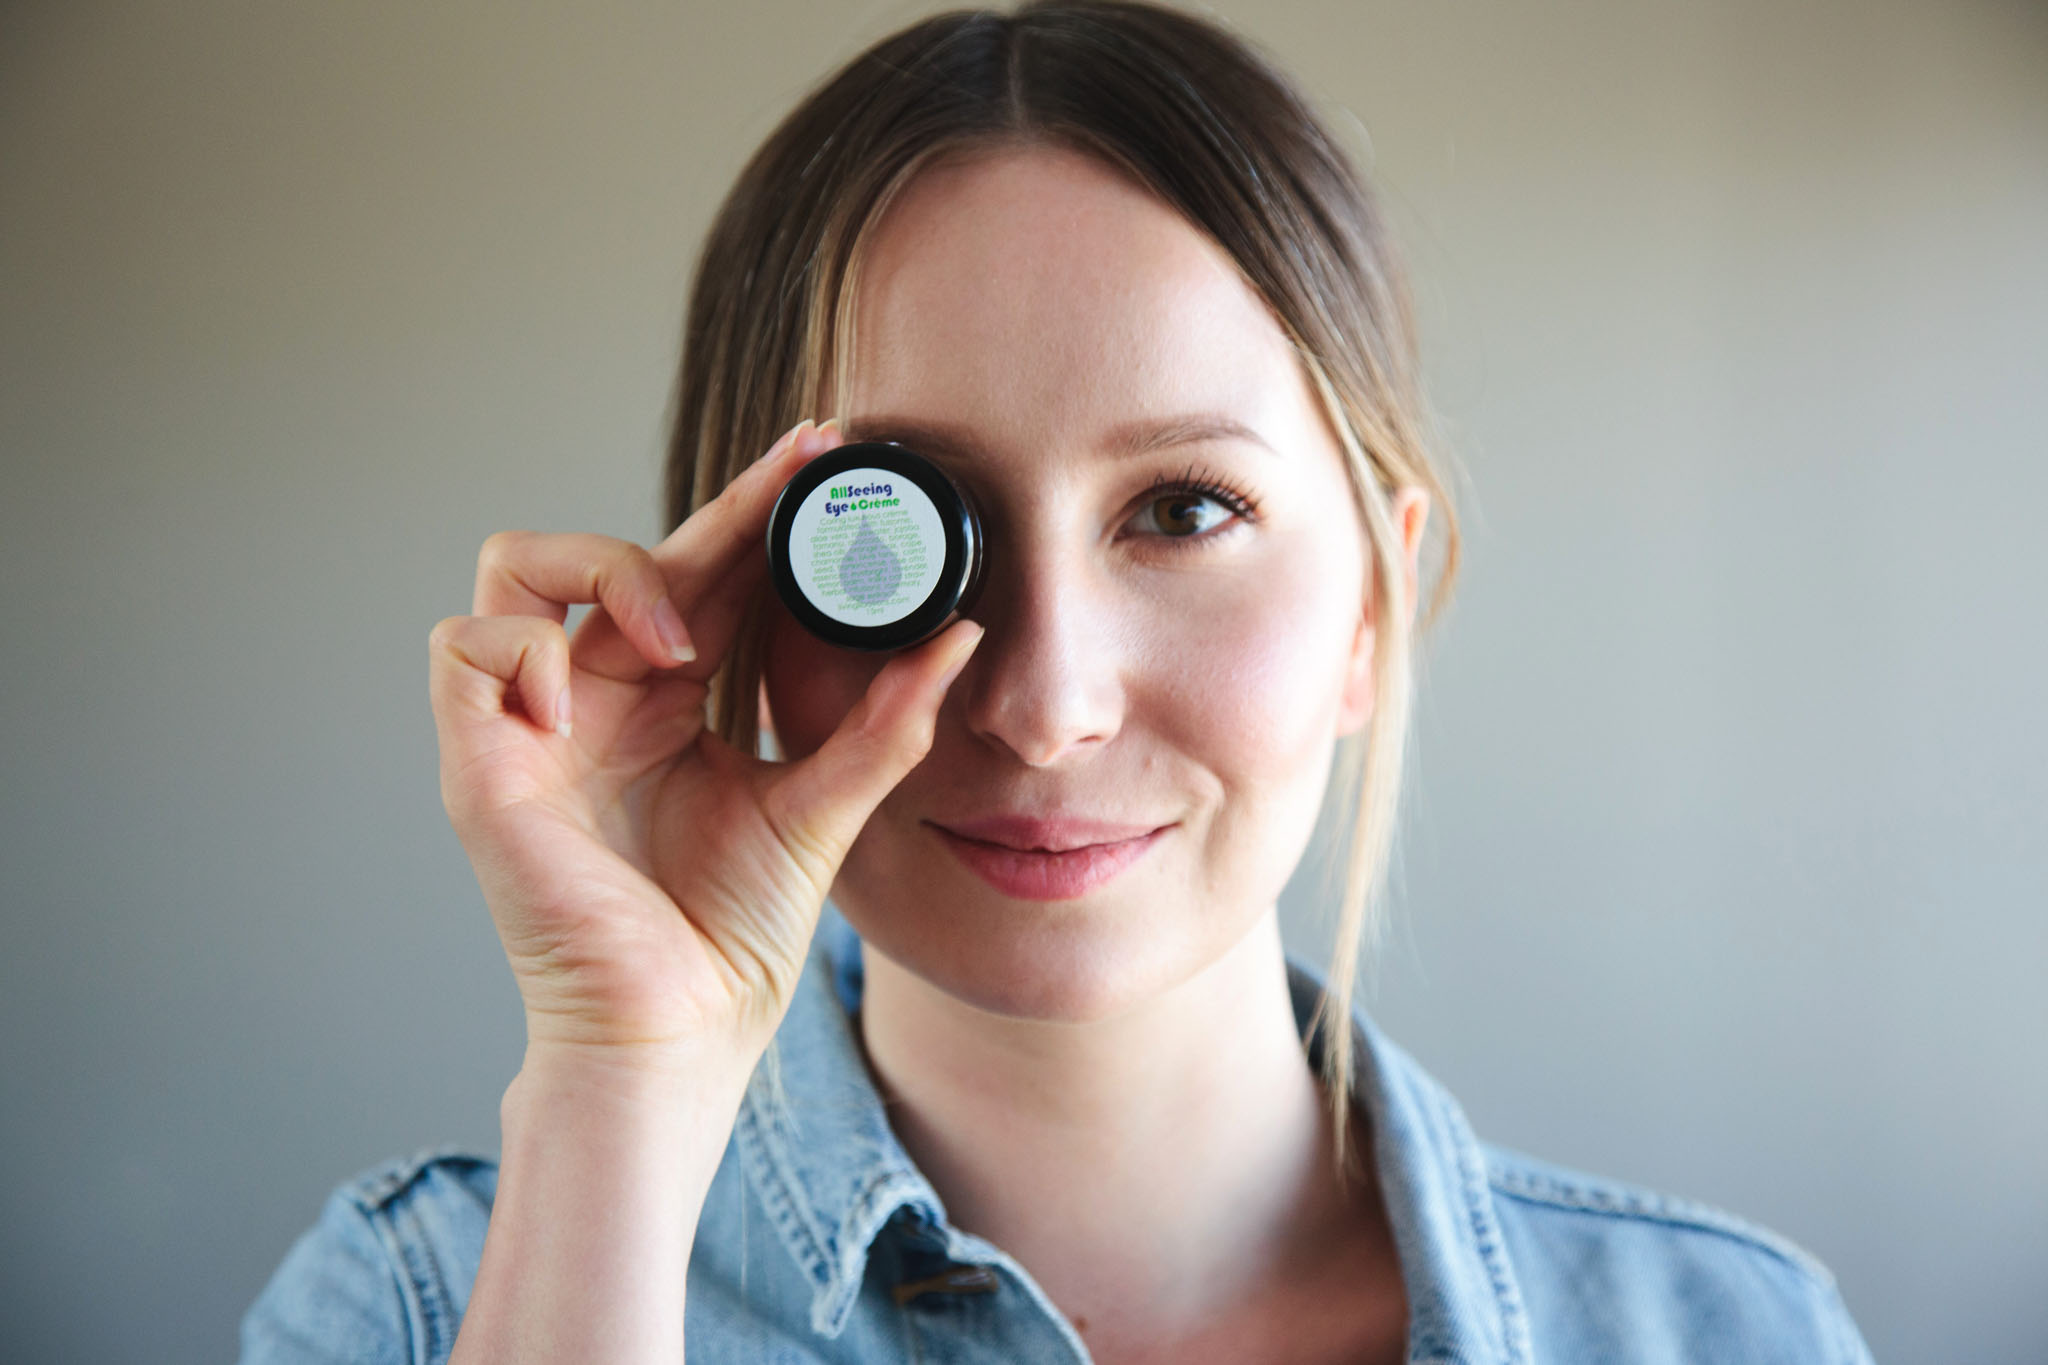 Living Libations All Seeing Eye Cream - Danielle's Spring Wakeup Favourites | Kolya Naturals, Canada